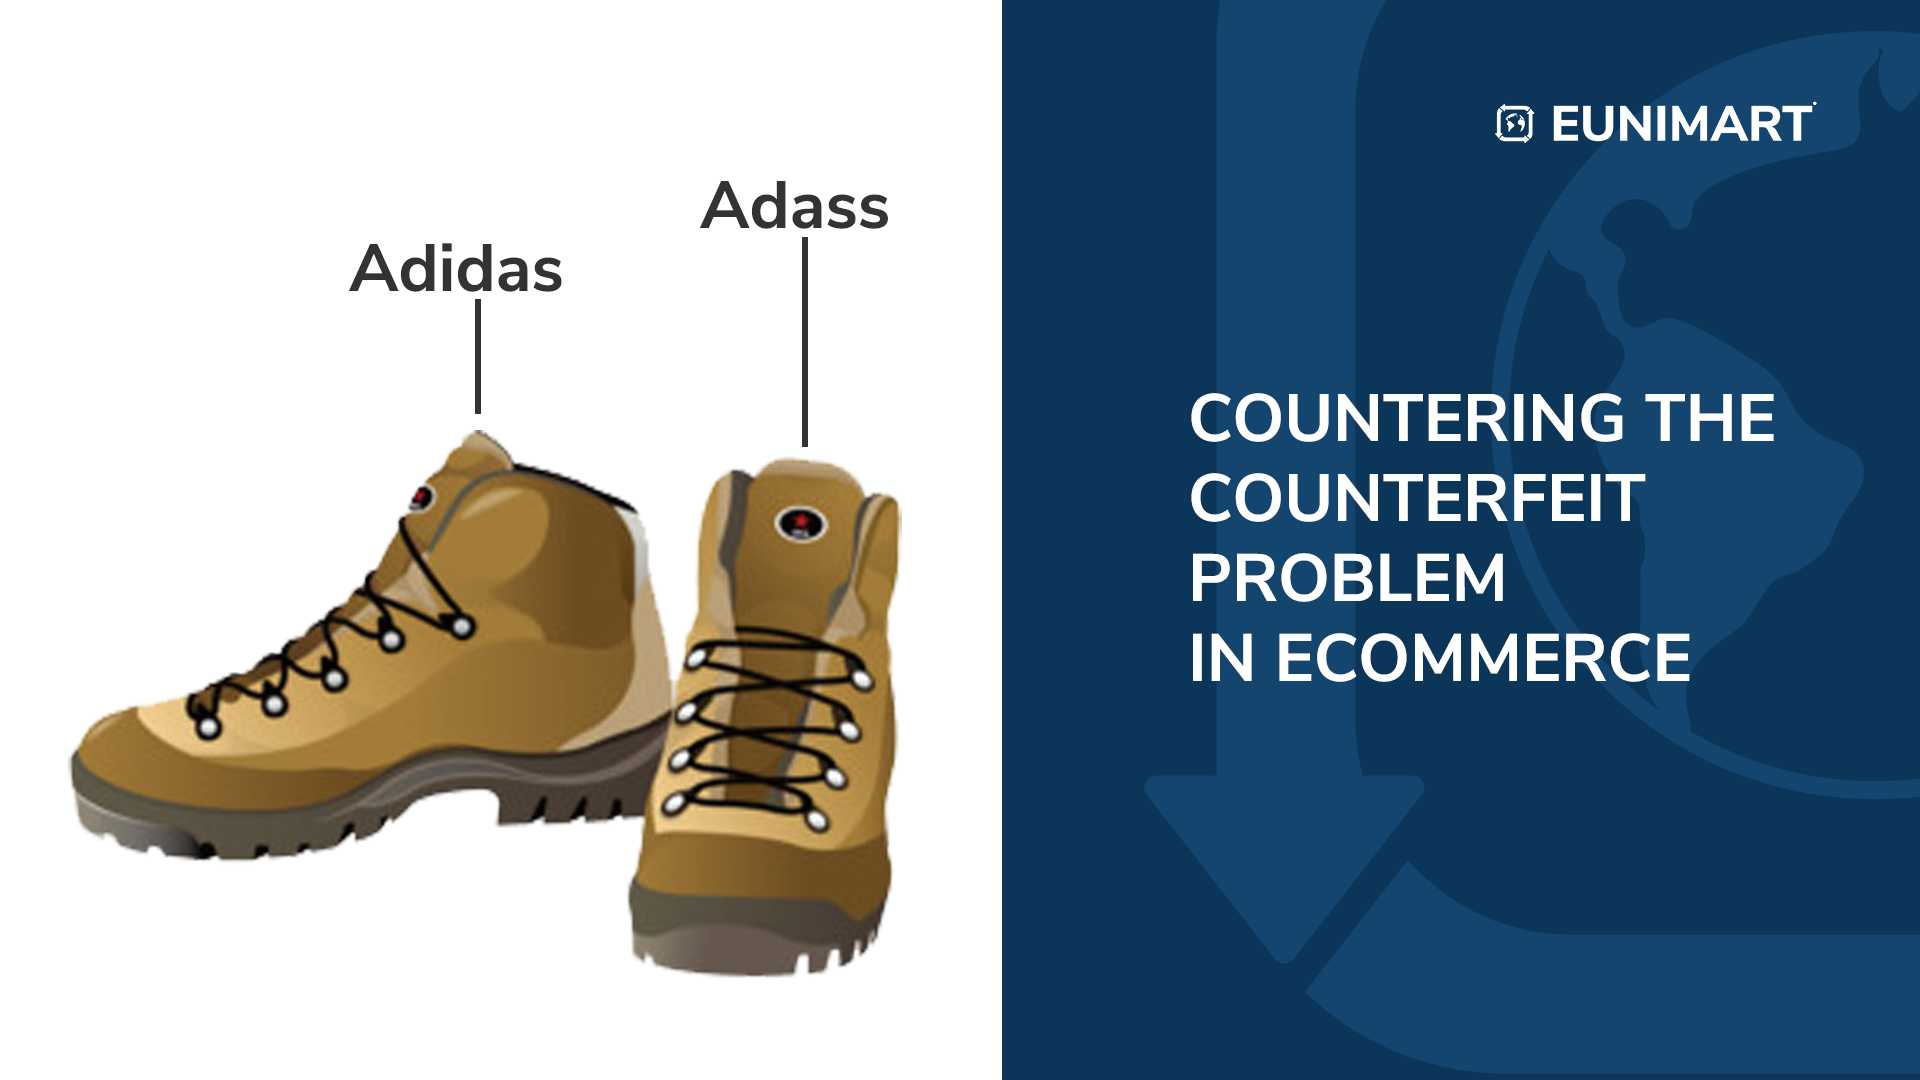 Solution to the counterfeit goods problem in ecommerce